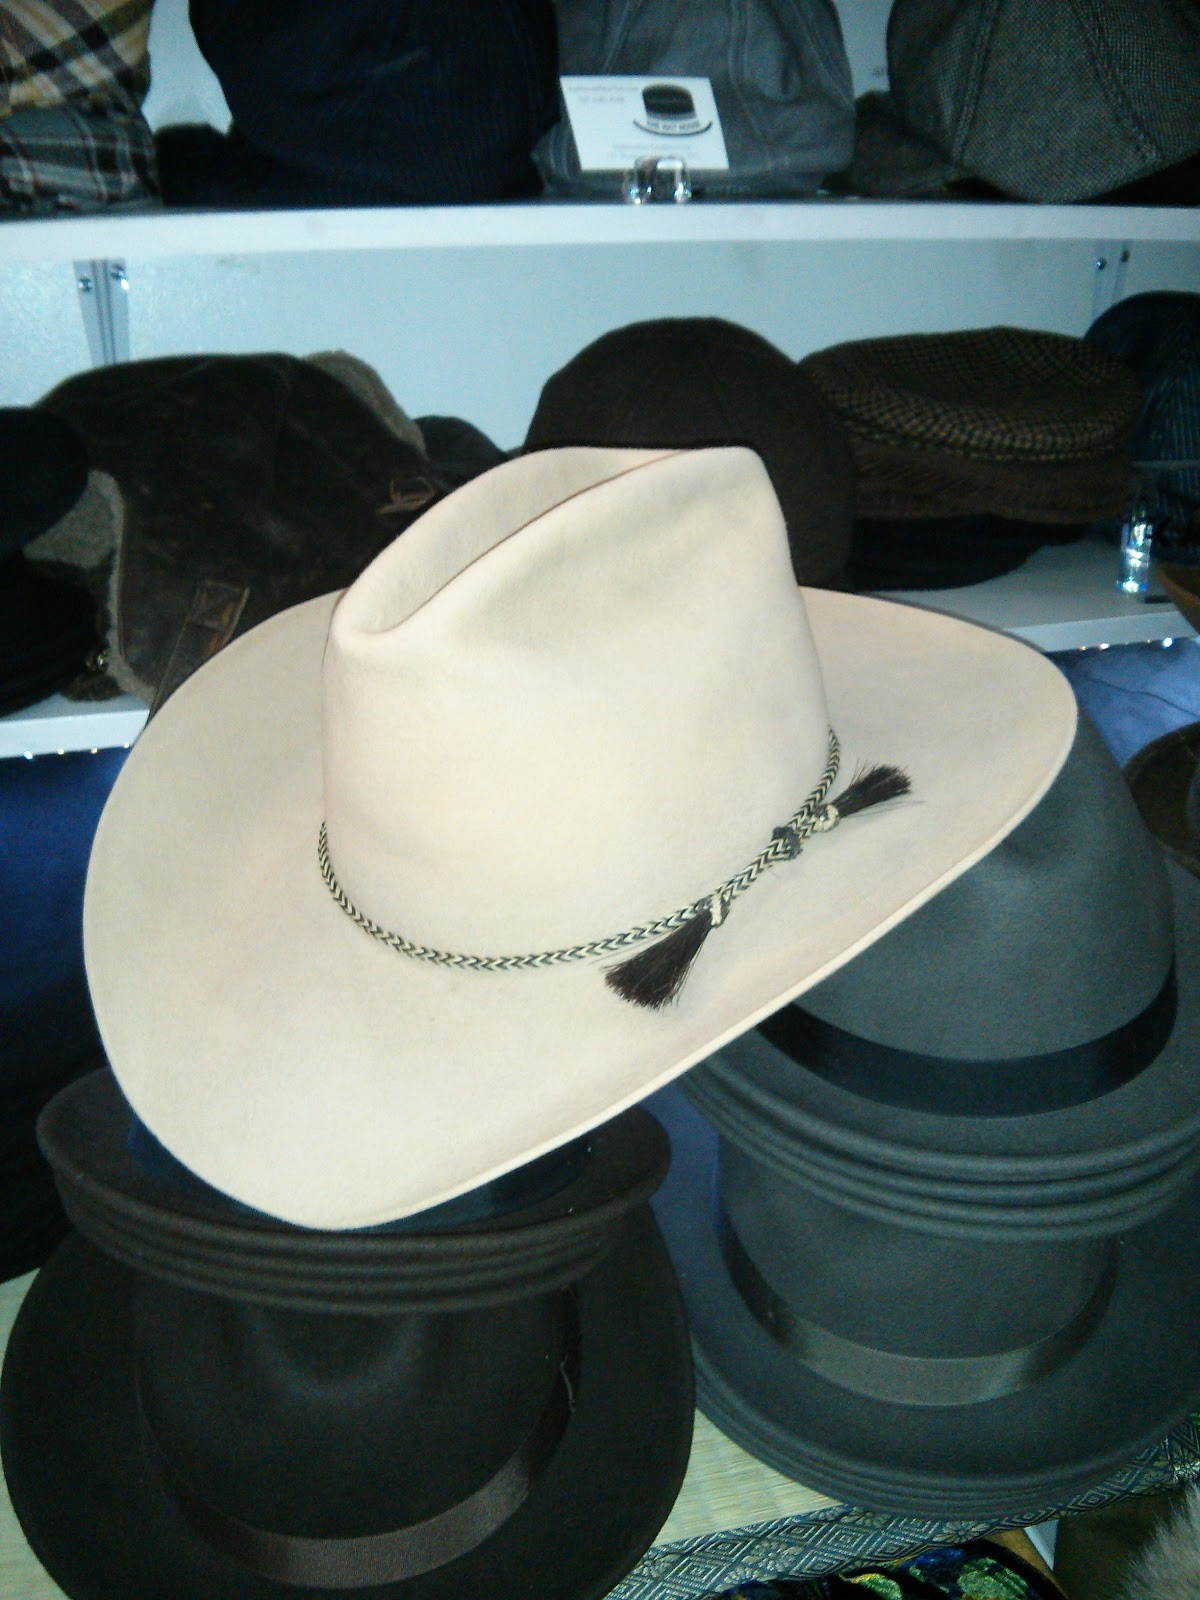 A Stetson Hat in NYC